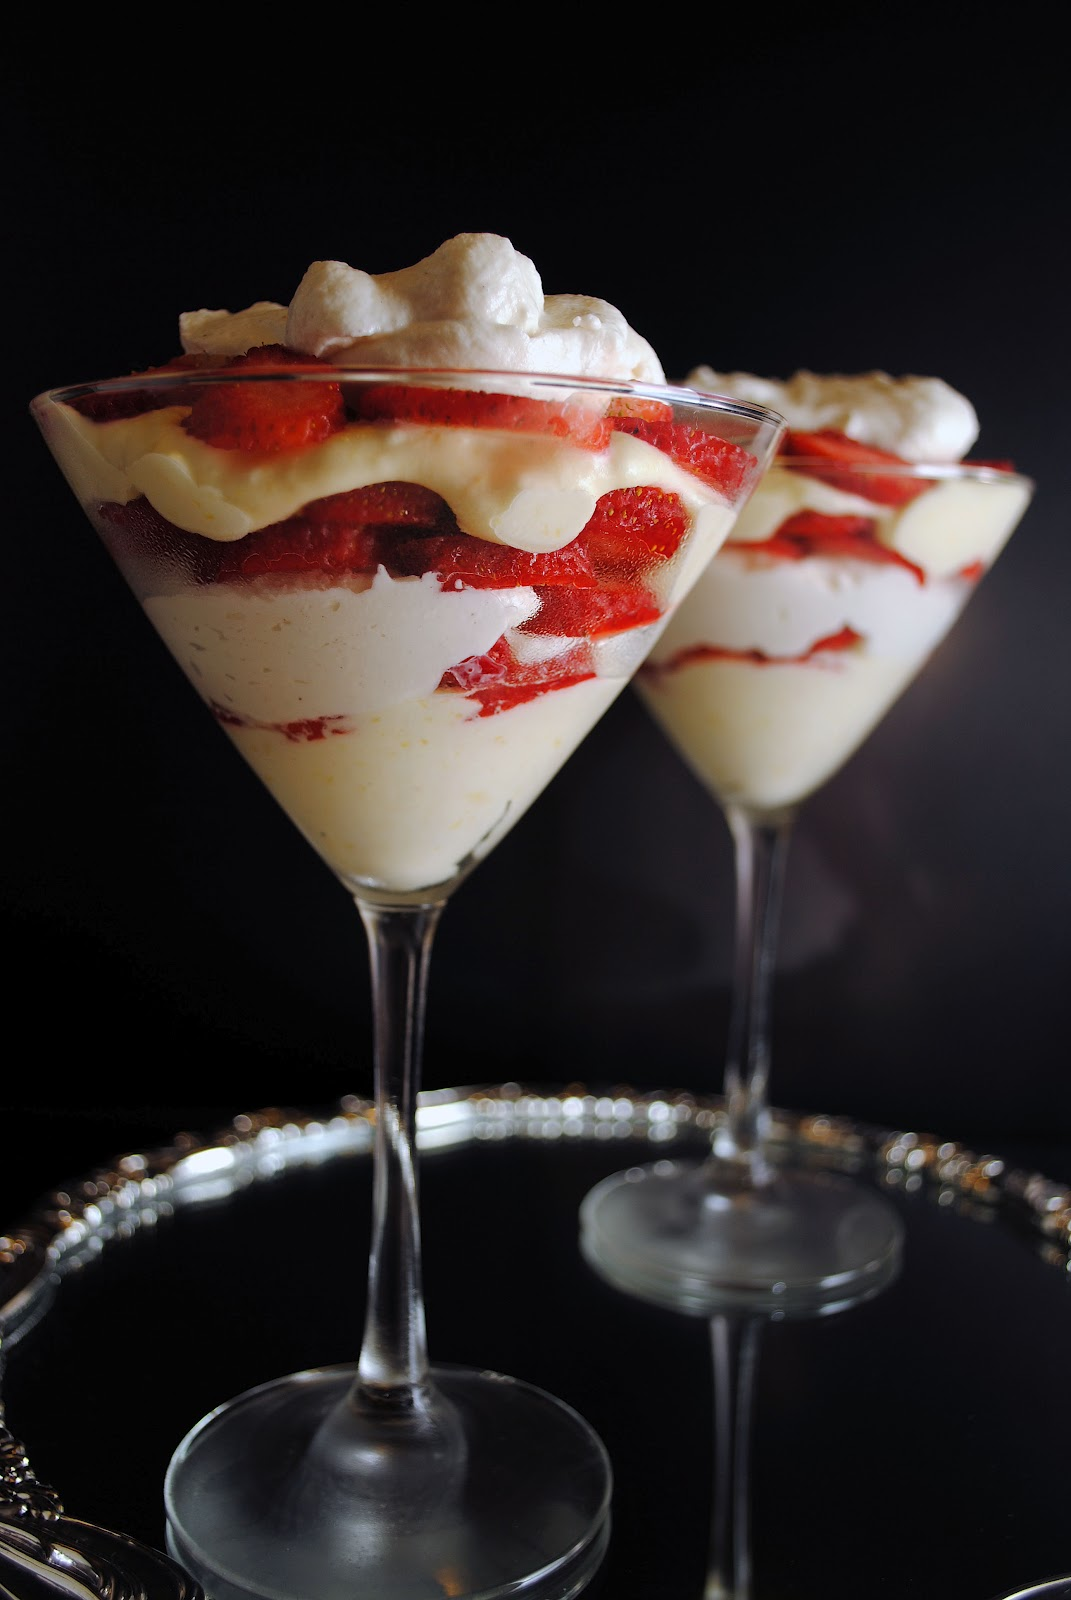 Lemon And White Chocolate Mousse Parfaits With Strawberries (with ...